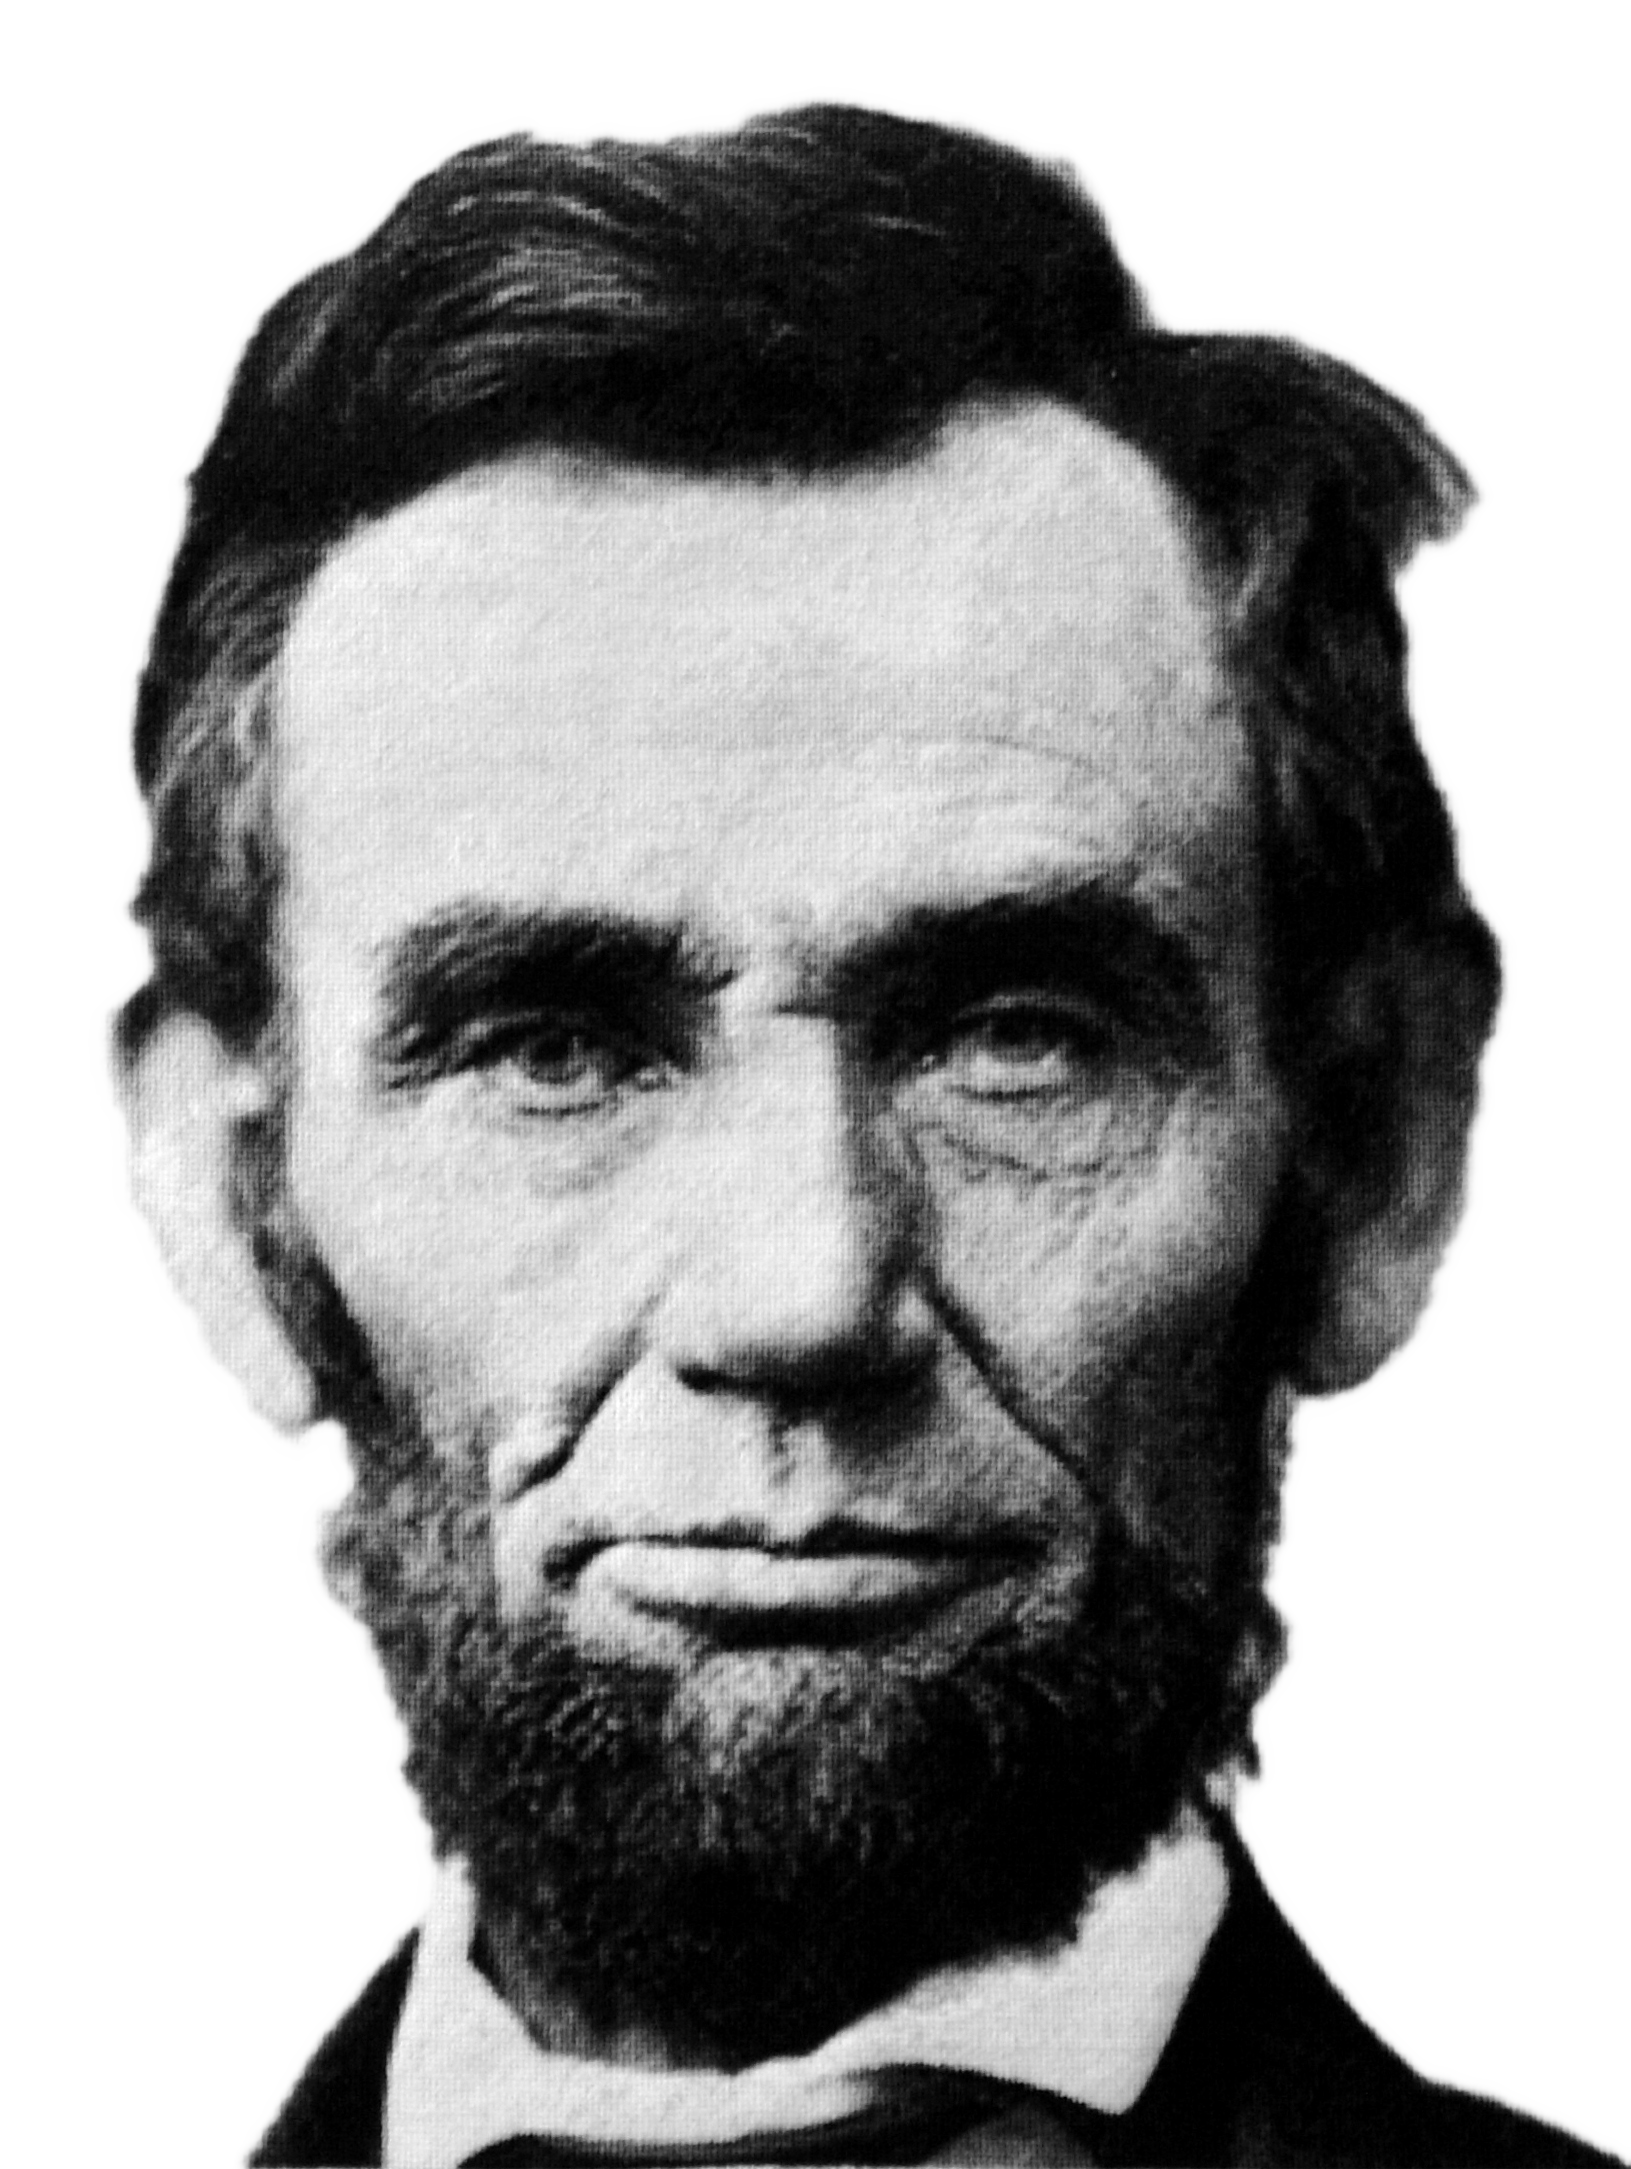 File:Abraham Lincoln small.png.